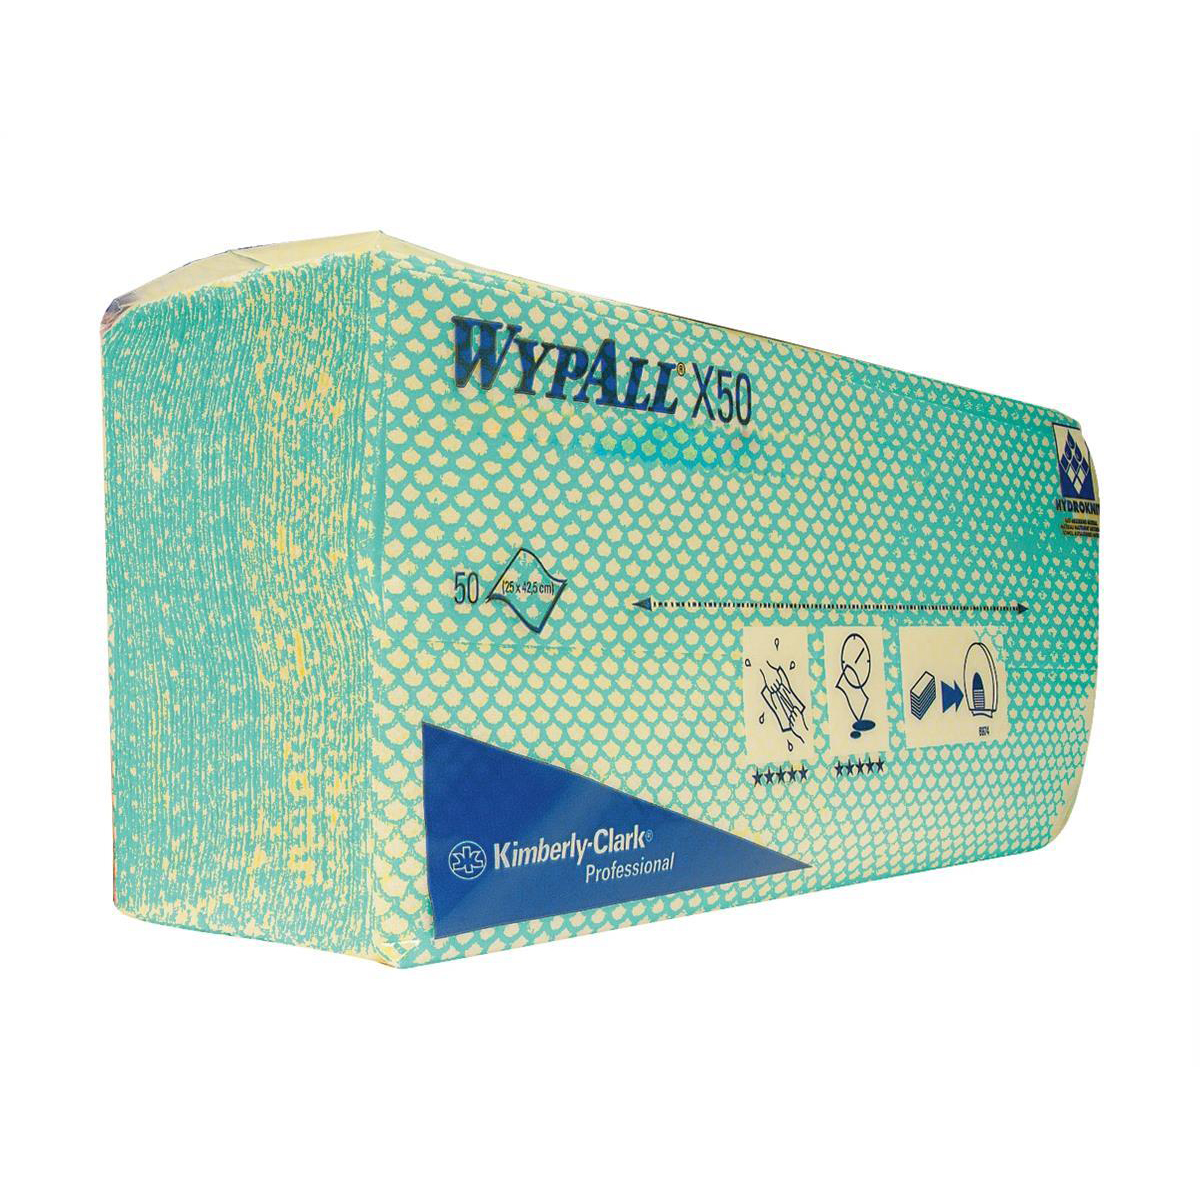 Wypall X50 Cleaning Cloths Absorbent Strong Non-woven Tear-resistant Green Ref 7442 Pack 50